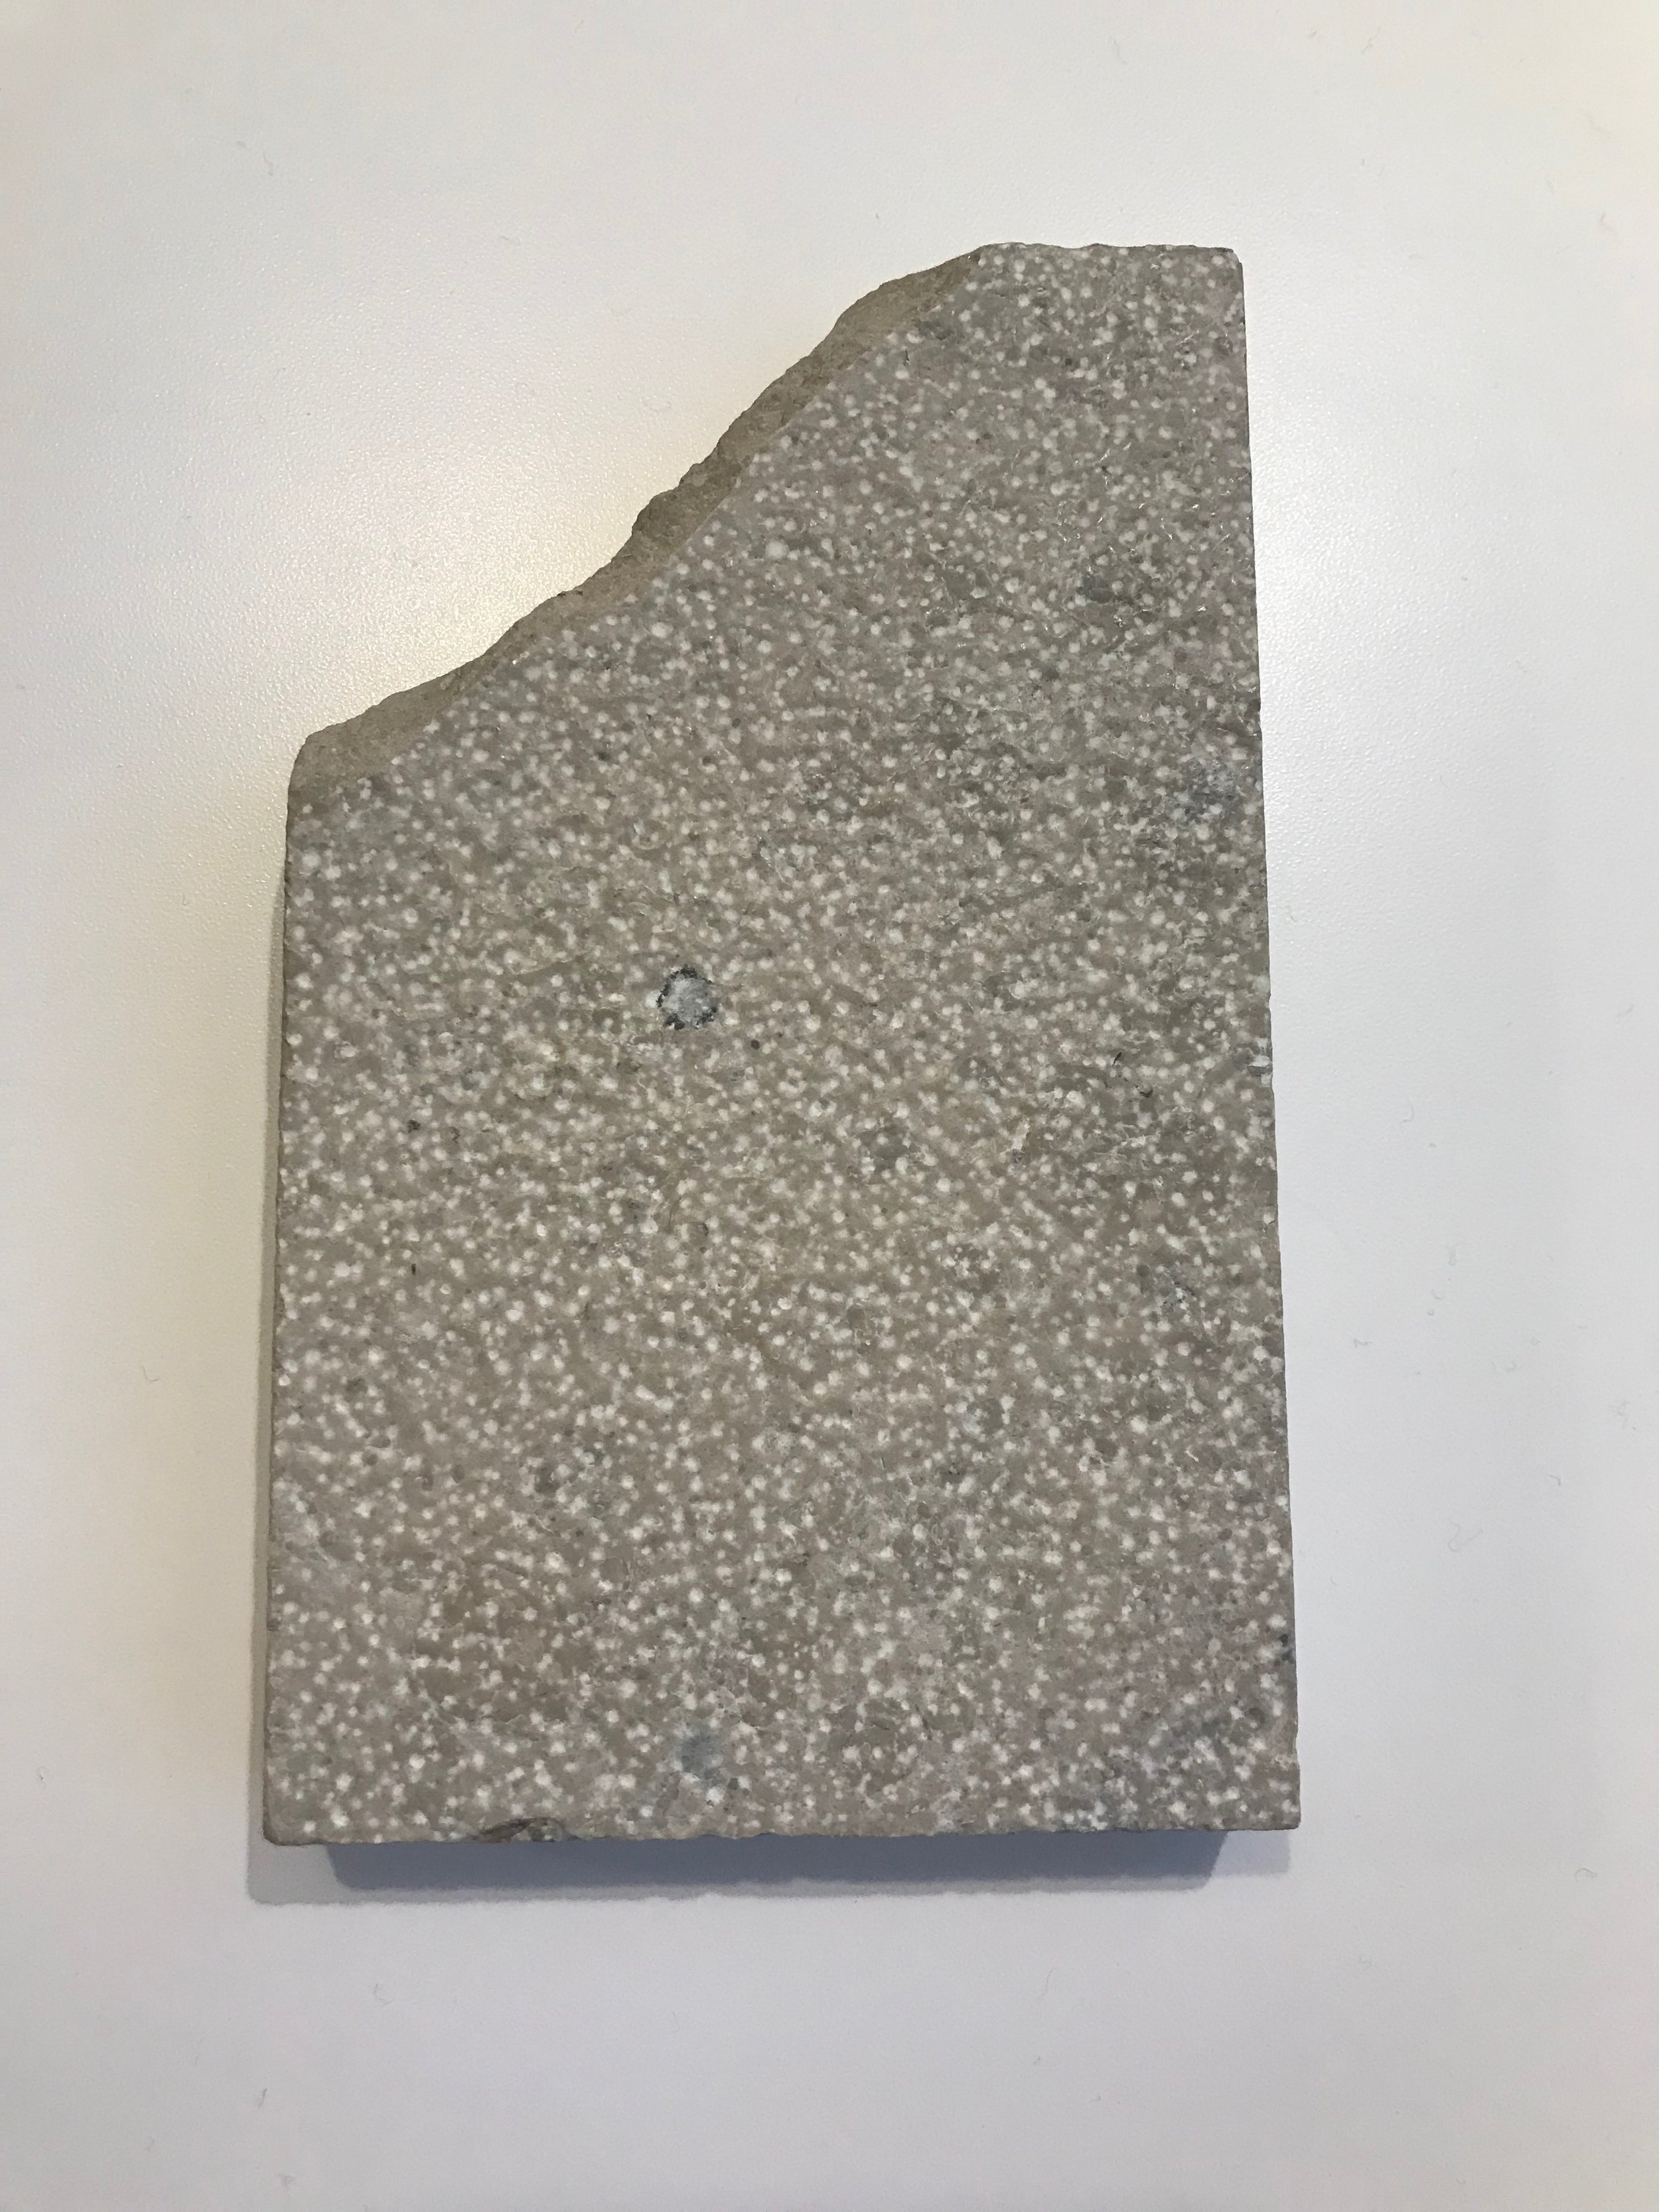 RENAISSANCE GRAY STONE FROM ABC STONE, BUSH HAMMERED AND BRUSHED FOR LIVING ROOM, KITCHEN, ENTRY -